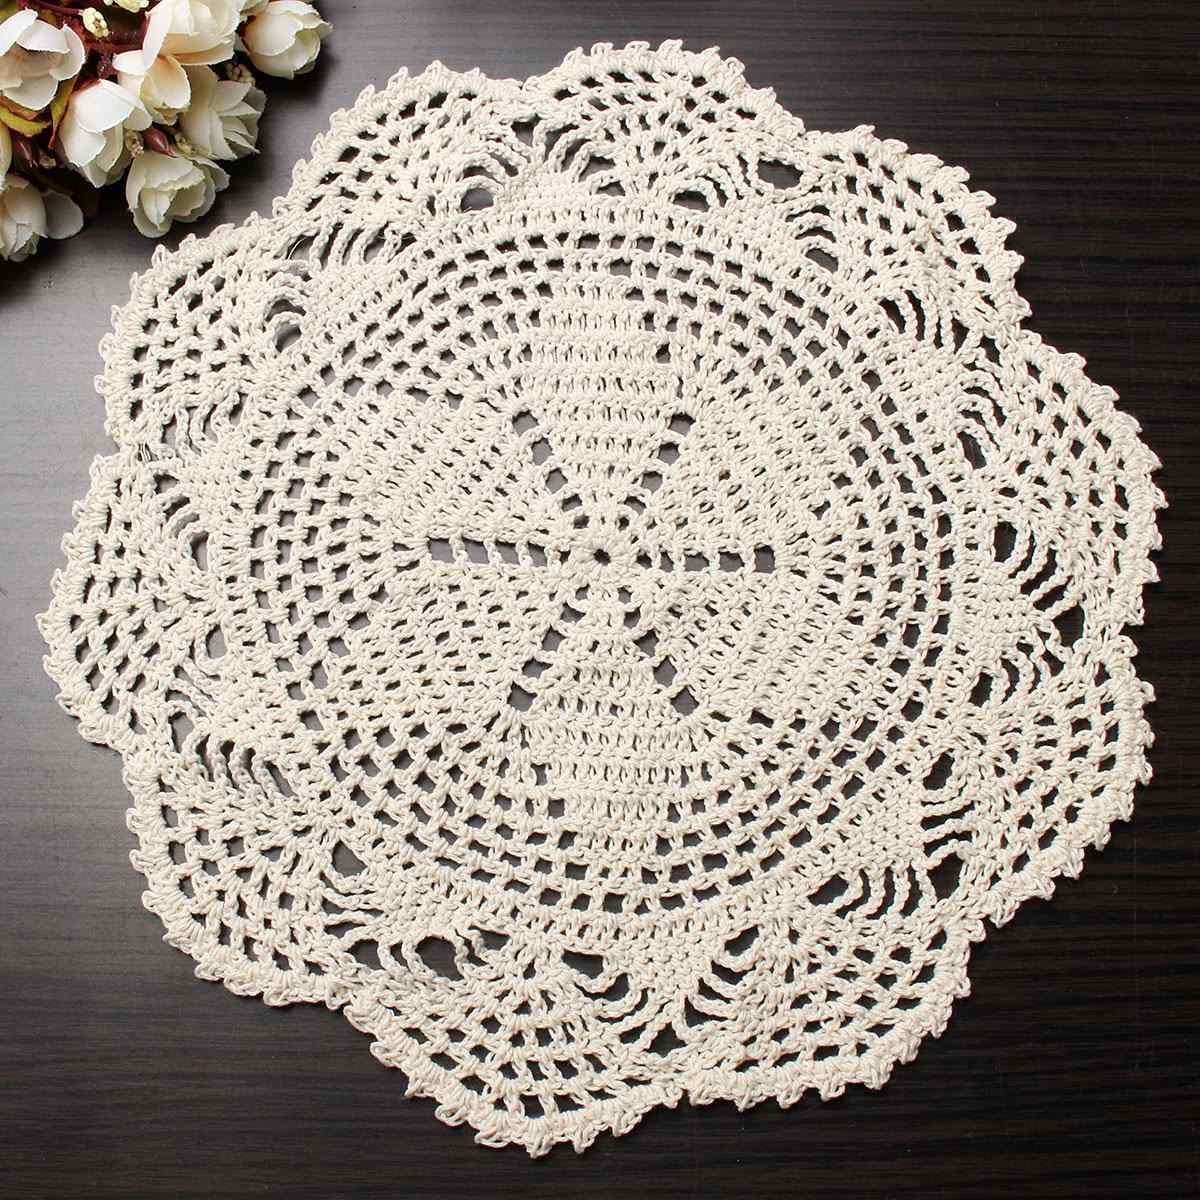 Cloth Lace Doilies Lovely Line Buy wholesale Cotton Lace Doilies From China Cotton Of Top 48 Pics Cloth Lace Doilies